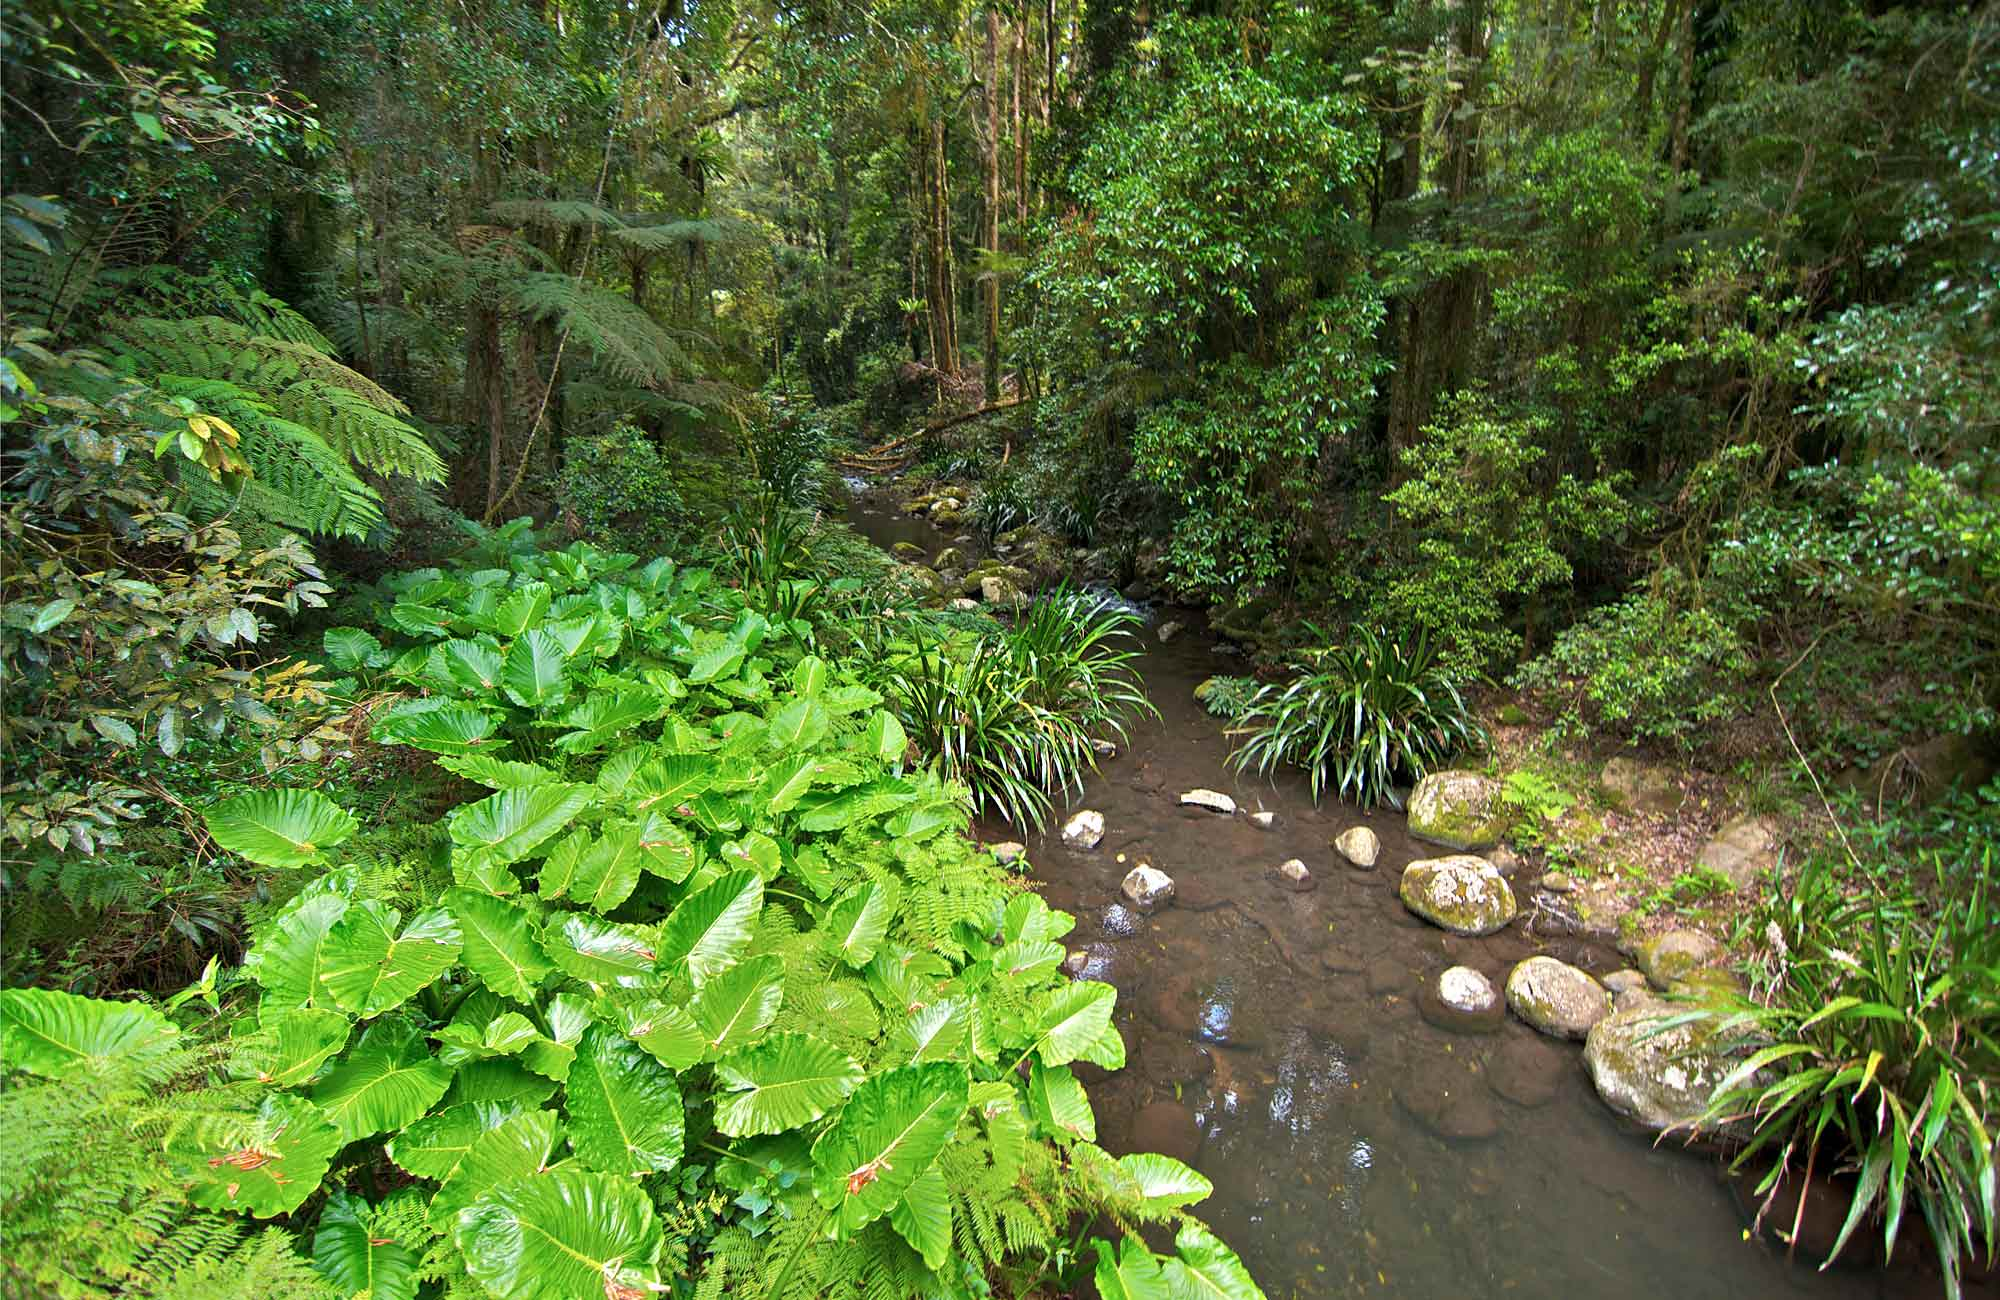 Brindle Creek runs through rainforest in Border Ranges National Park. Photo credit: John Spencer © DPIE